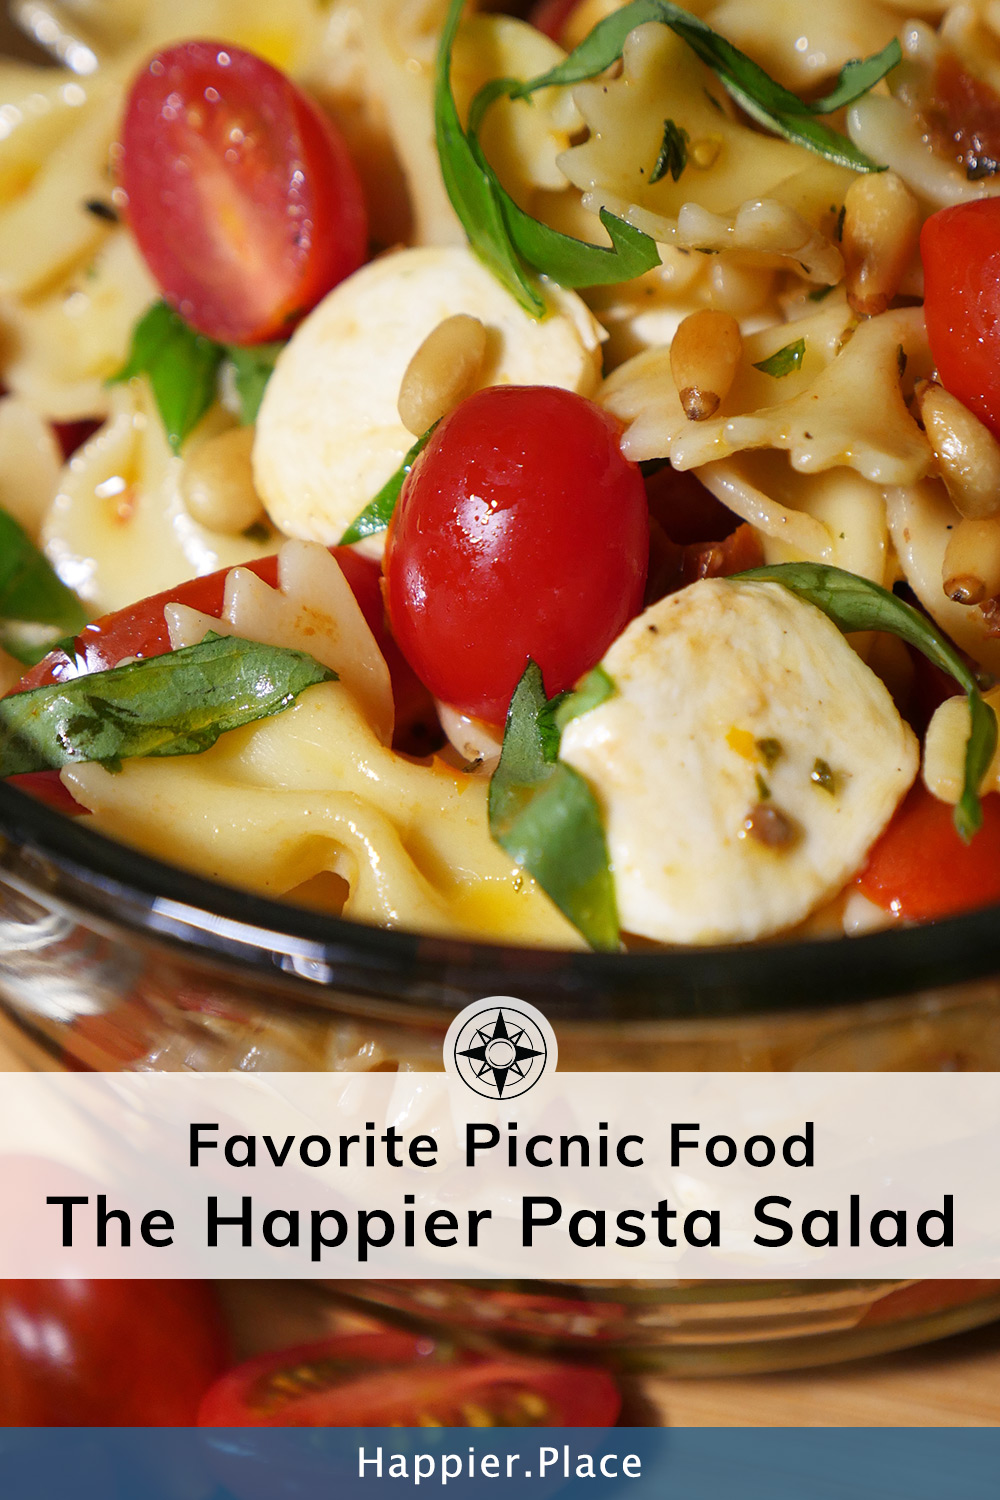 Our Favorite Picnic Food: The Happier Pasta Salad